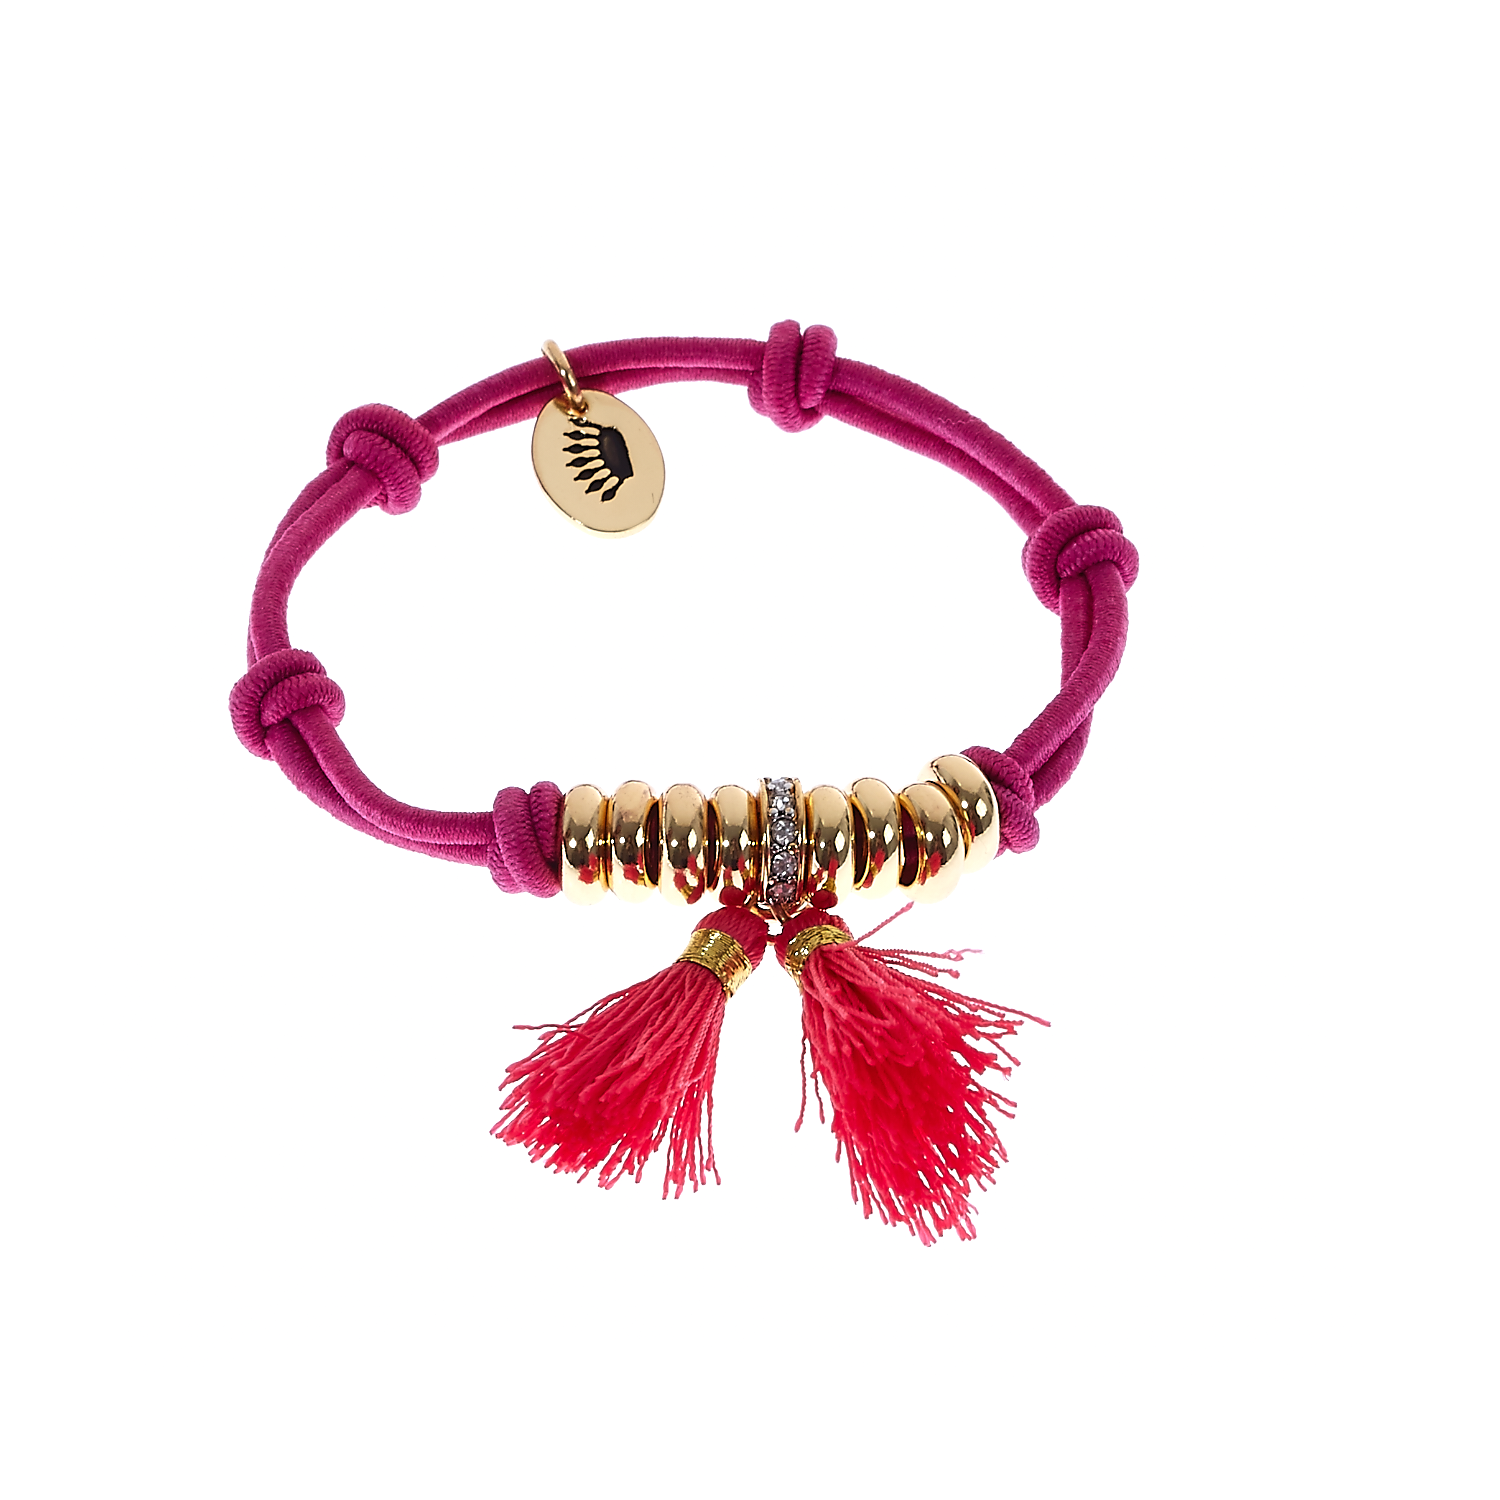 JUICY COUTURE - Λαστιχάκι για τα μαλλιά Multi Charm Knotted γυναικεία αξεσουάρ αξεσουάρ μαλλιών